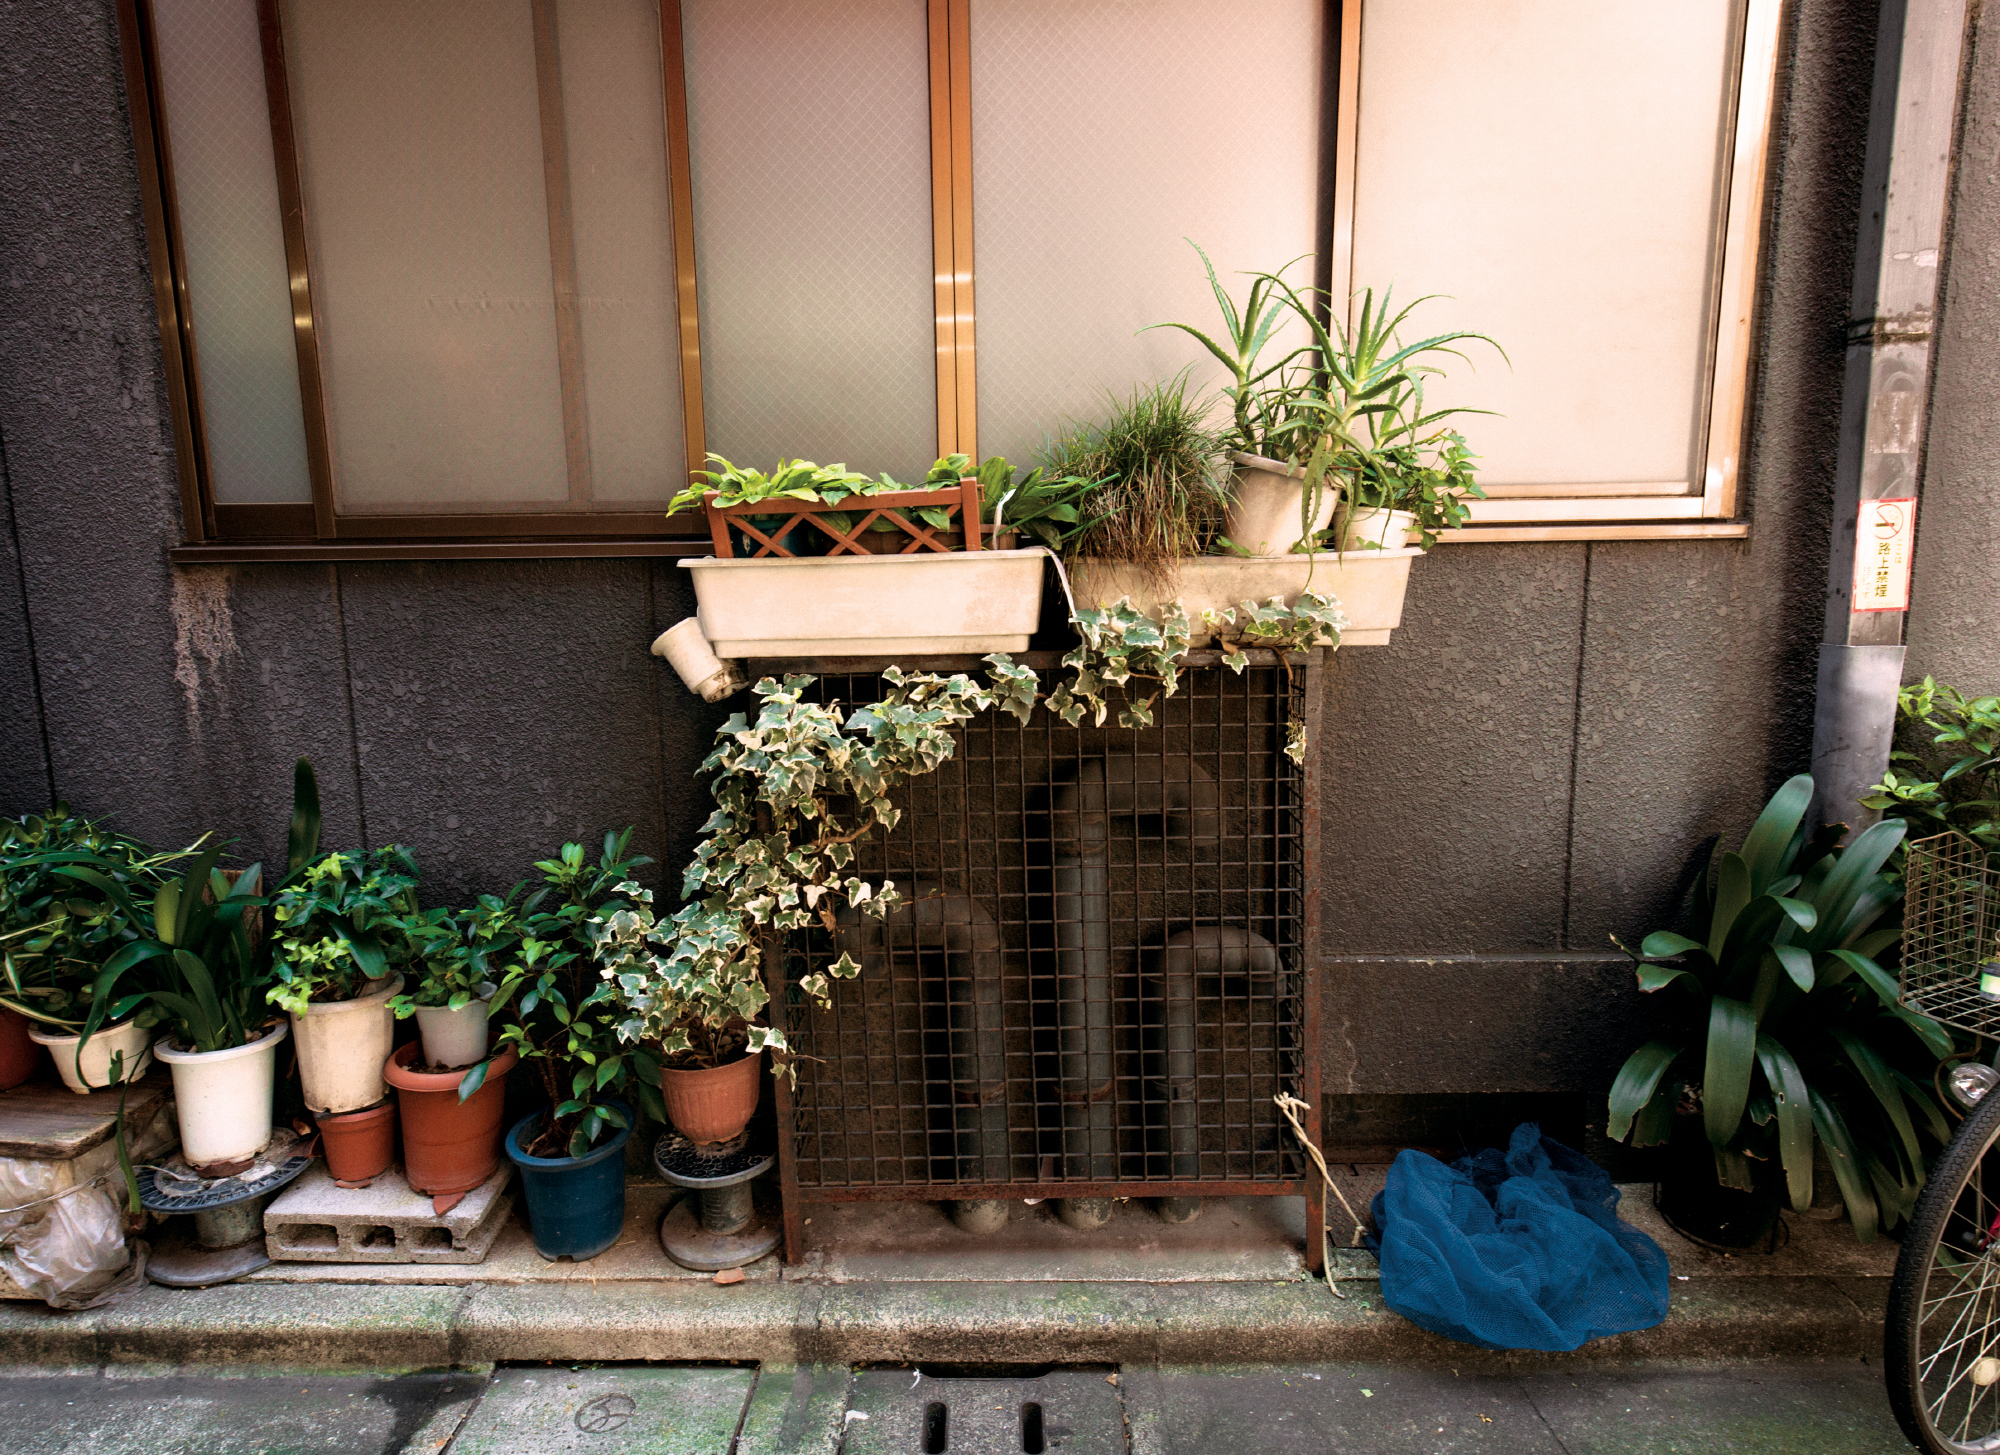 Photograph taken of the side of a persons house in Tokyo, Japan with plants and a bicycle under their window